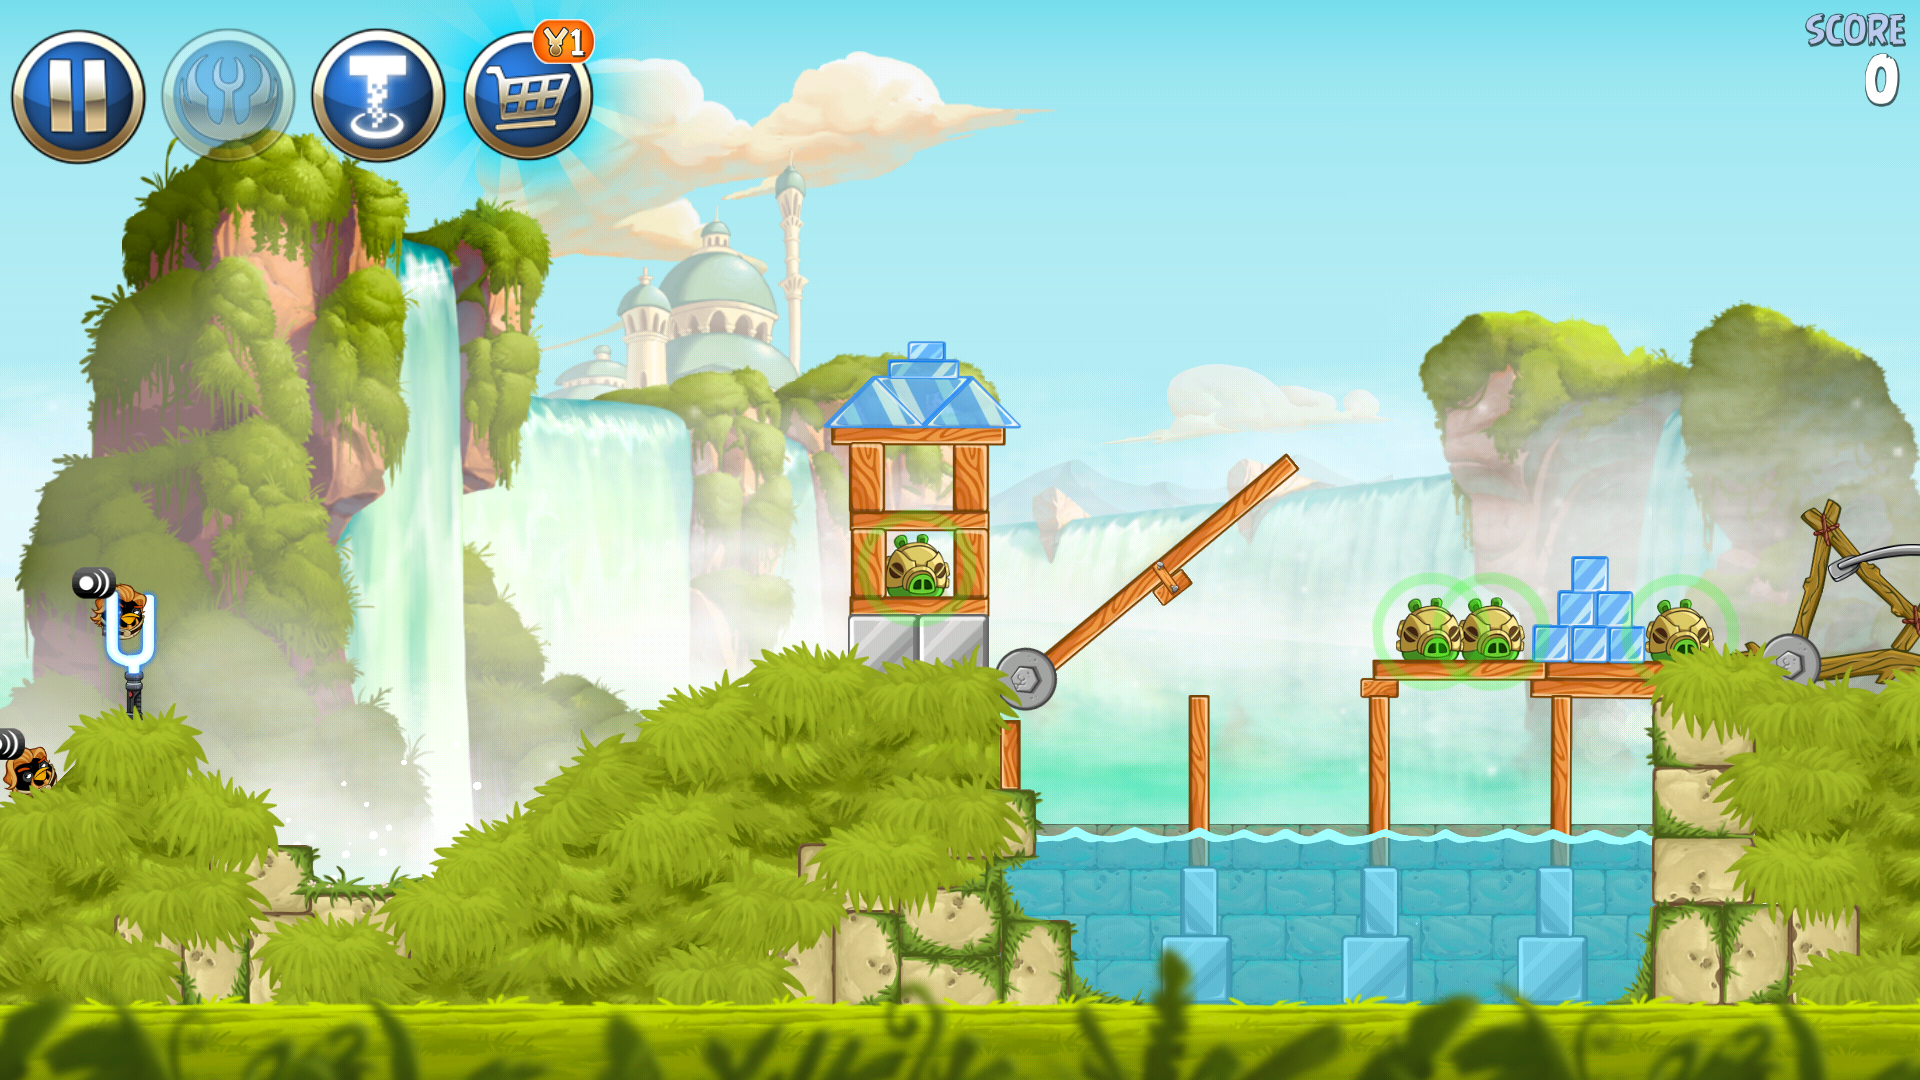 Angry birds star wars 2 android 18 20 test photos vid o - Telecharger angry birds star wars 2 ...